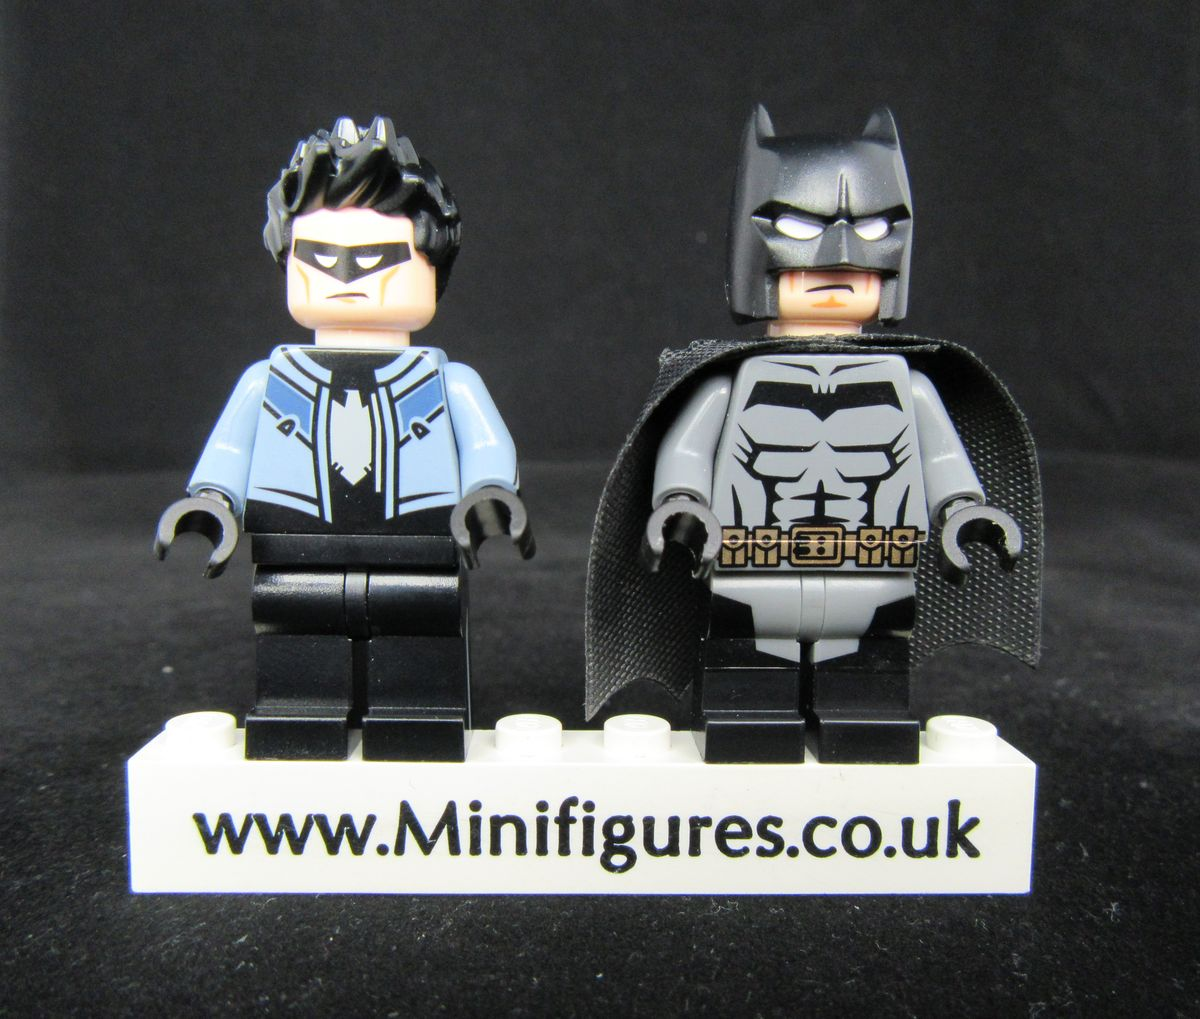 Darknight & Bluewing Funny Brick Custom Minifigures